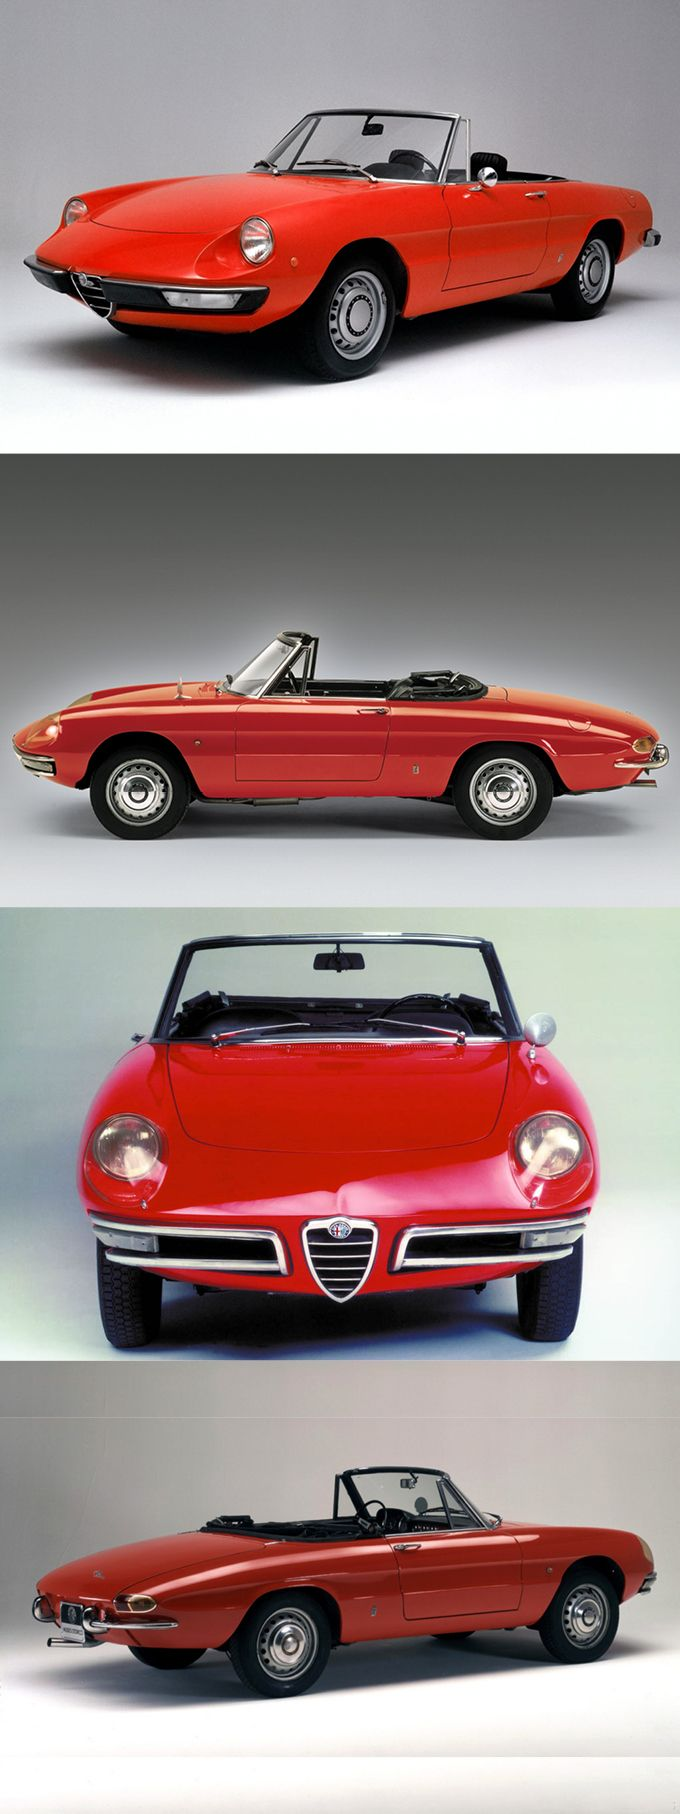 25 best ideas about alfa romeo spider on pinterest alfa romeo convertible alfa romeo and. Black Bedroom Furniture Sets. Home Design Ideas